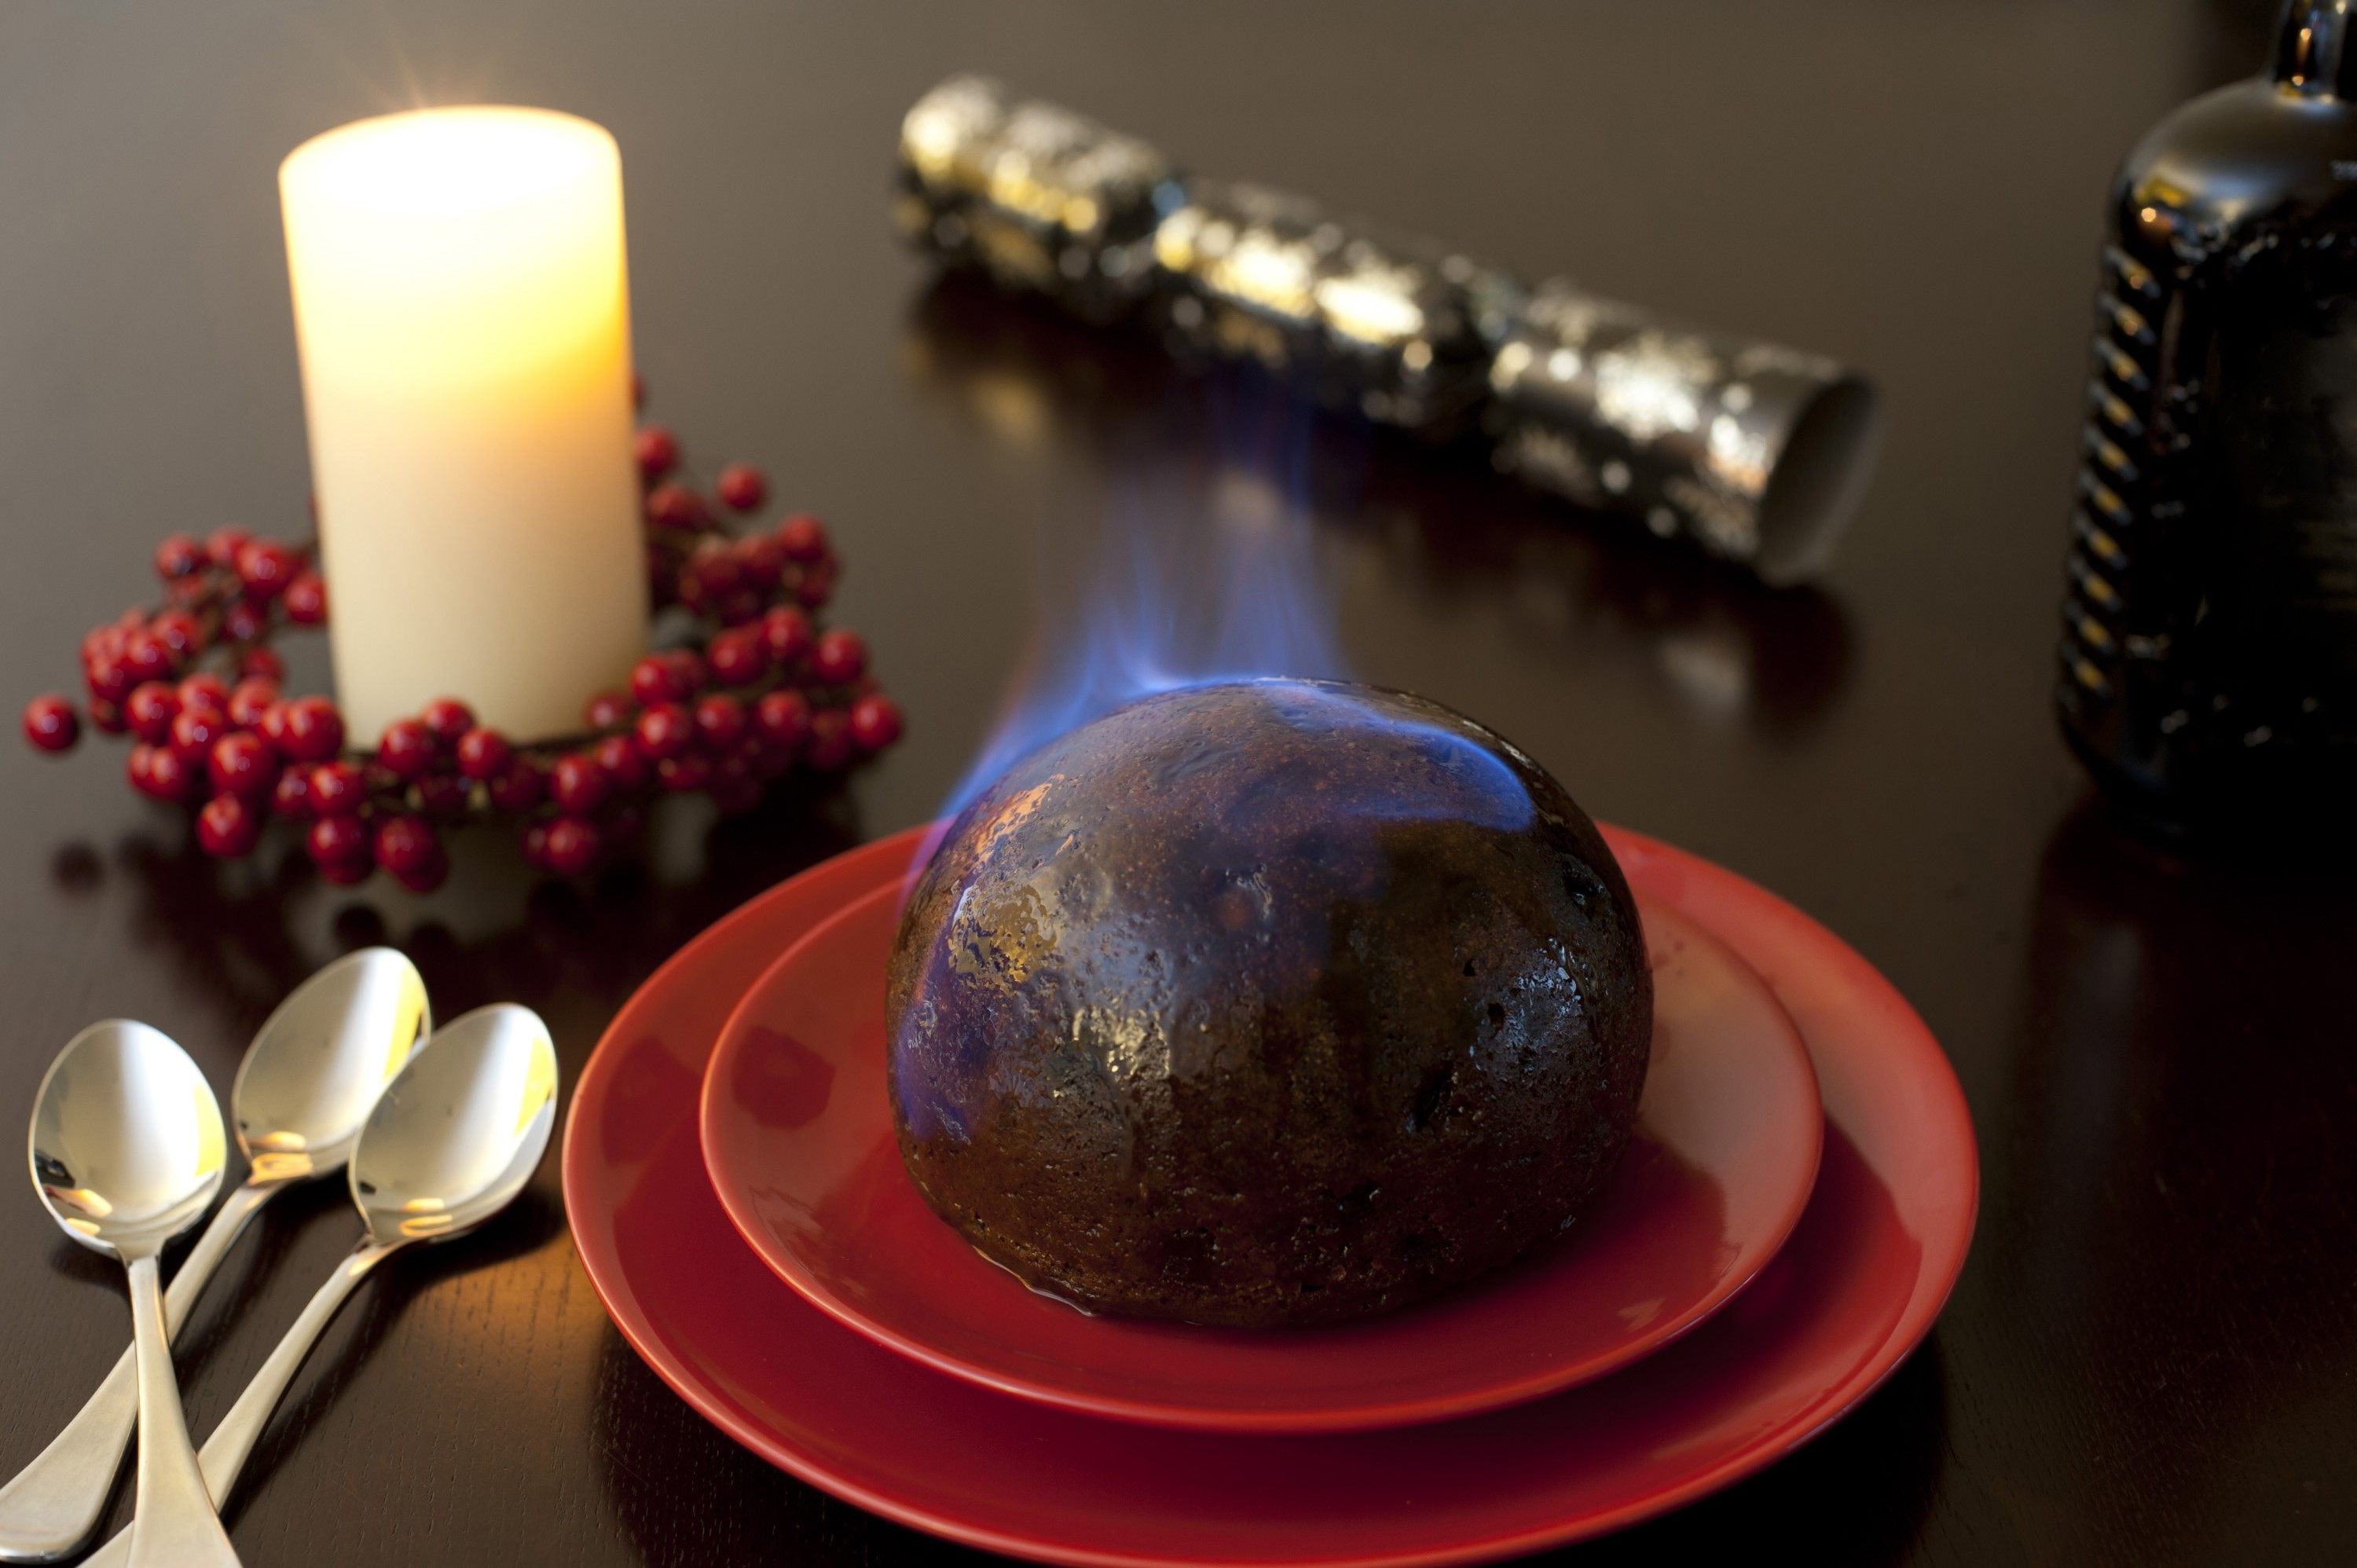 Traditional rich fruity flaming brandy pudding served for a delicious Christmas dessert on festive red plates standing on a table with a glowing seasonal candle